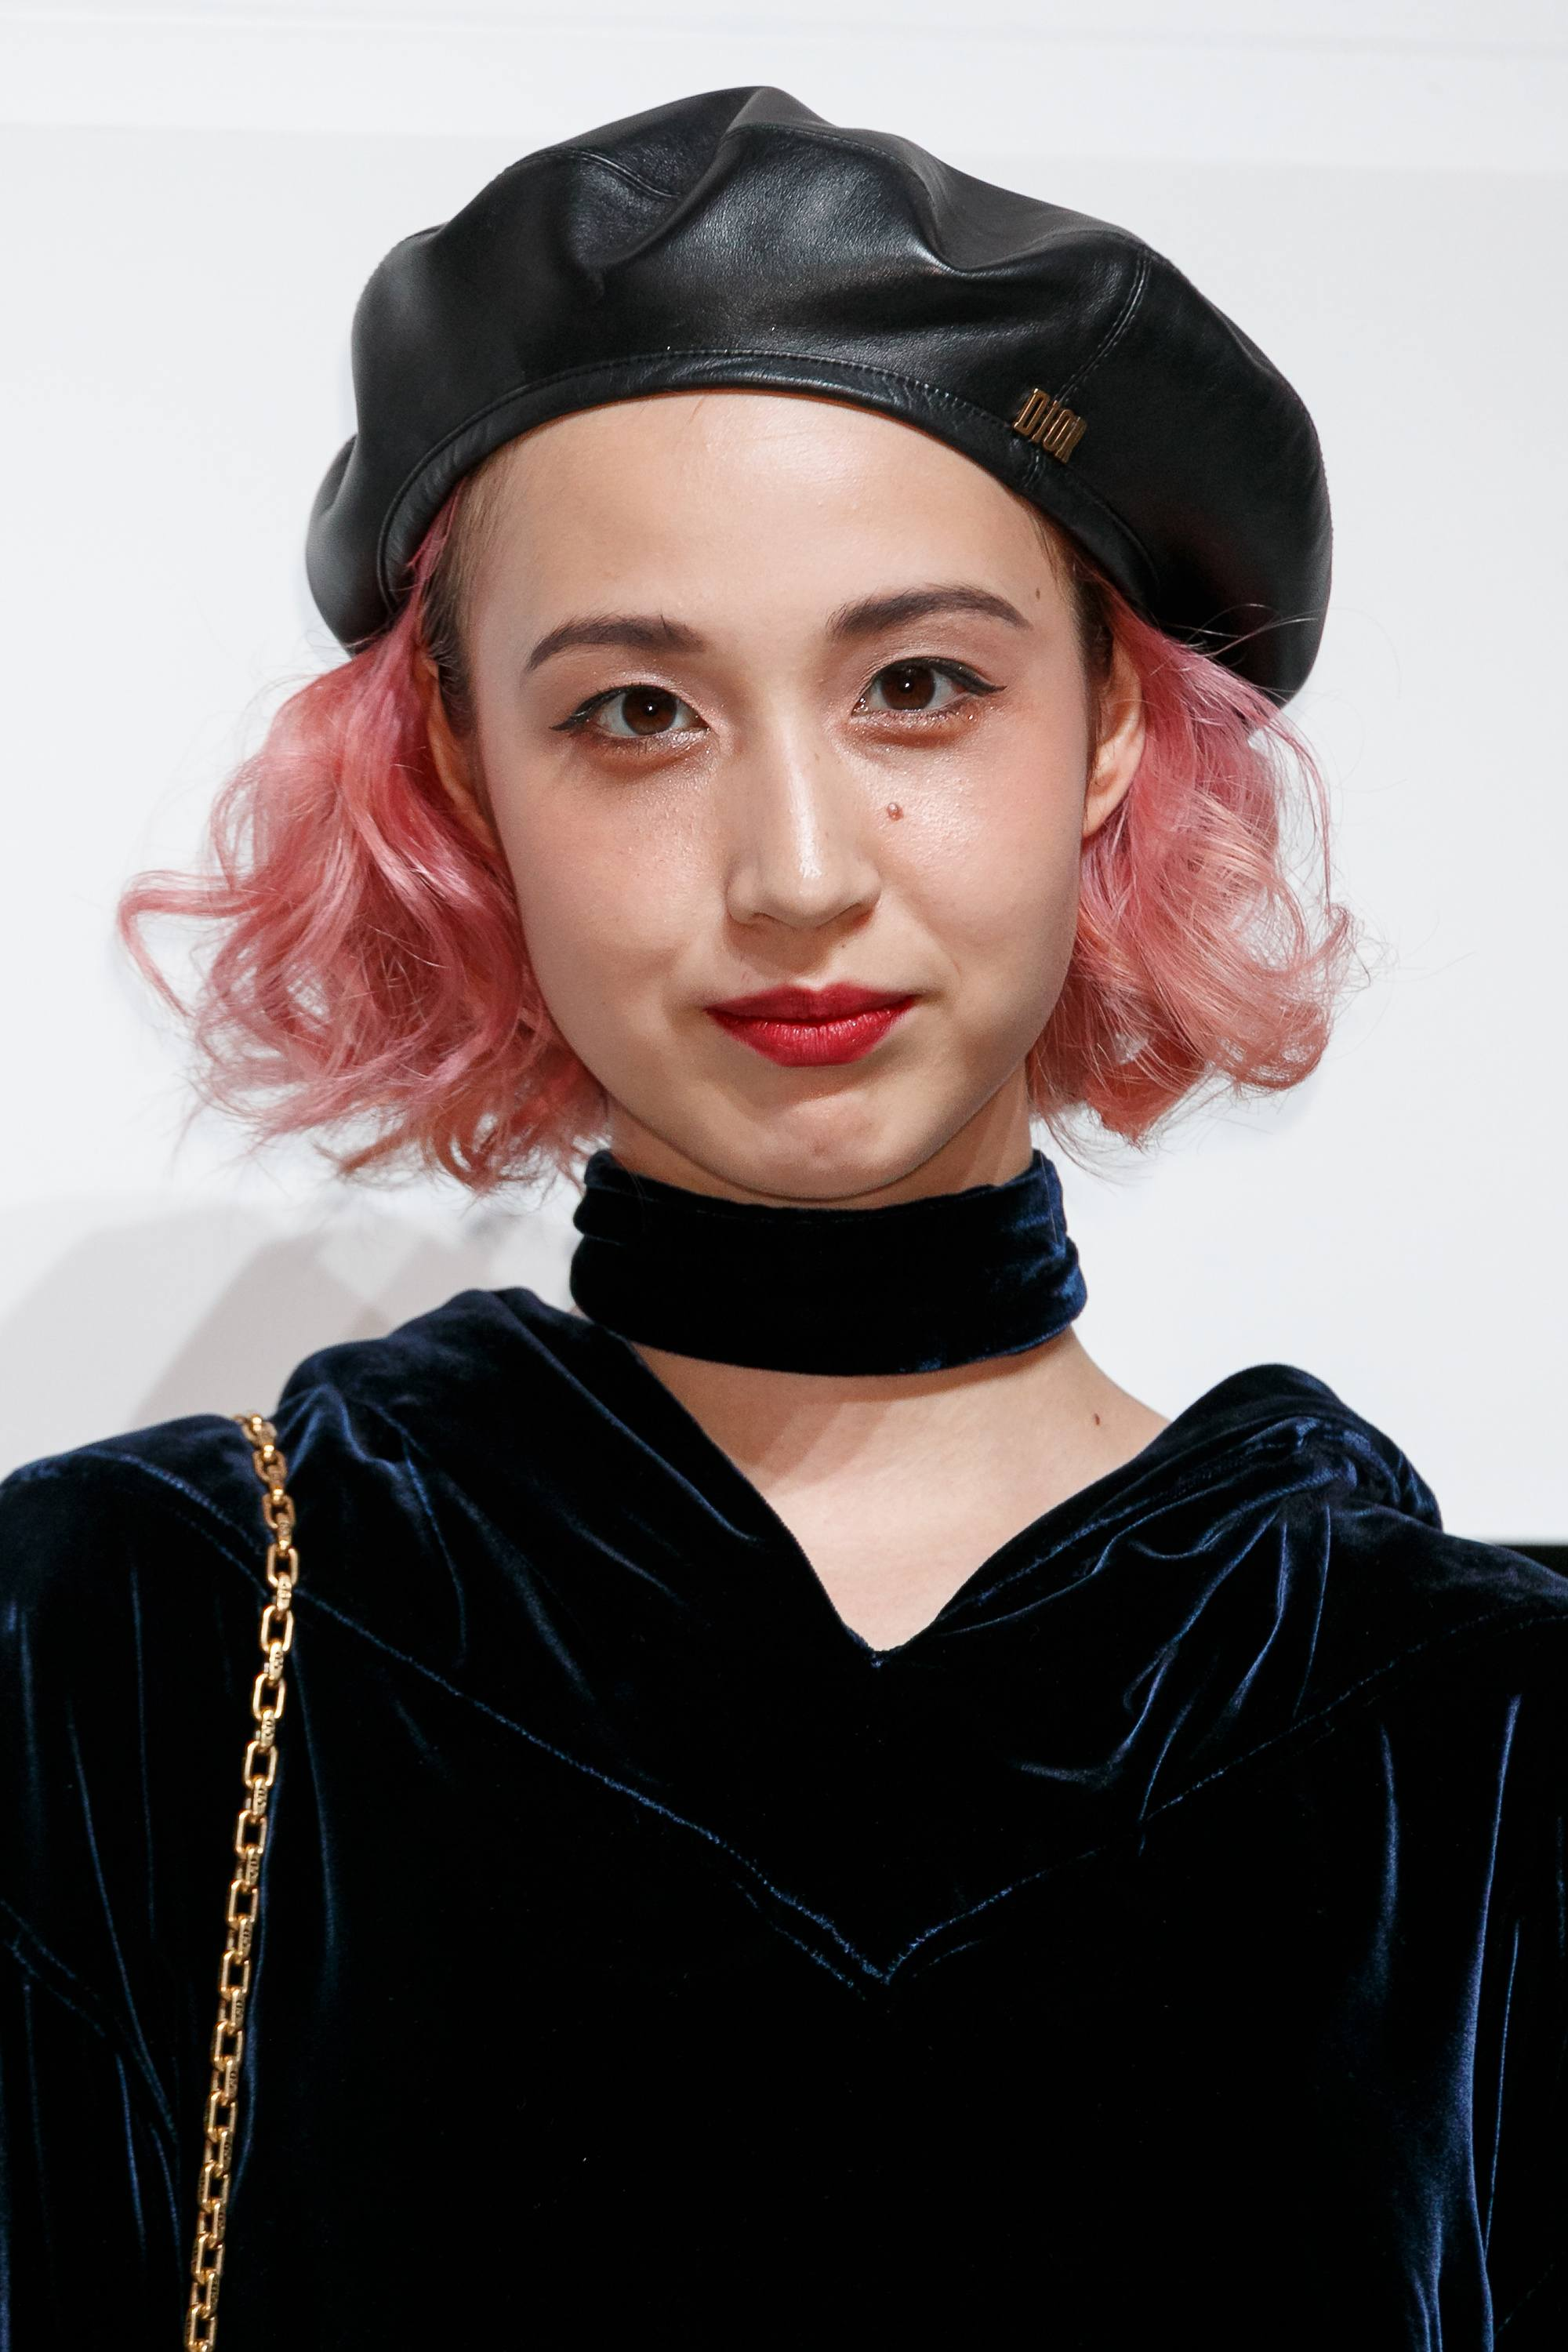 close up shpt of woman with short pink asian hairstyle wearing a black beret and velvet jumper